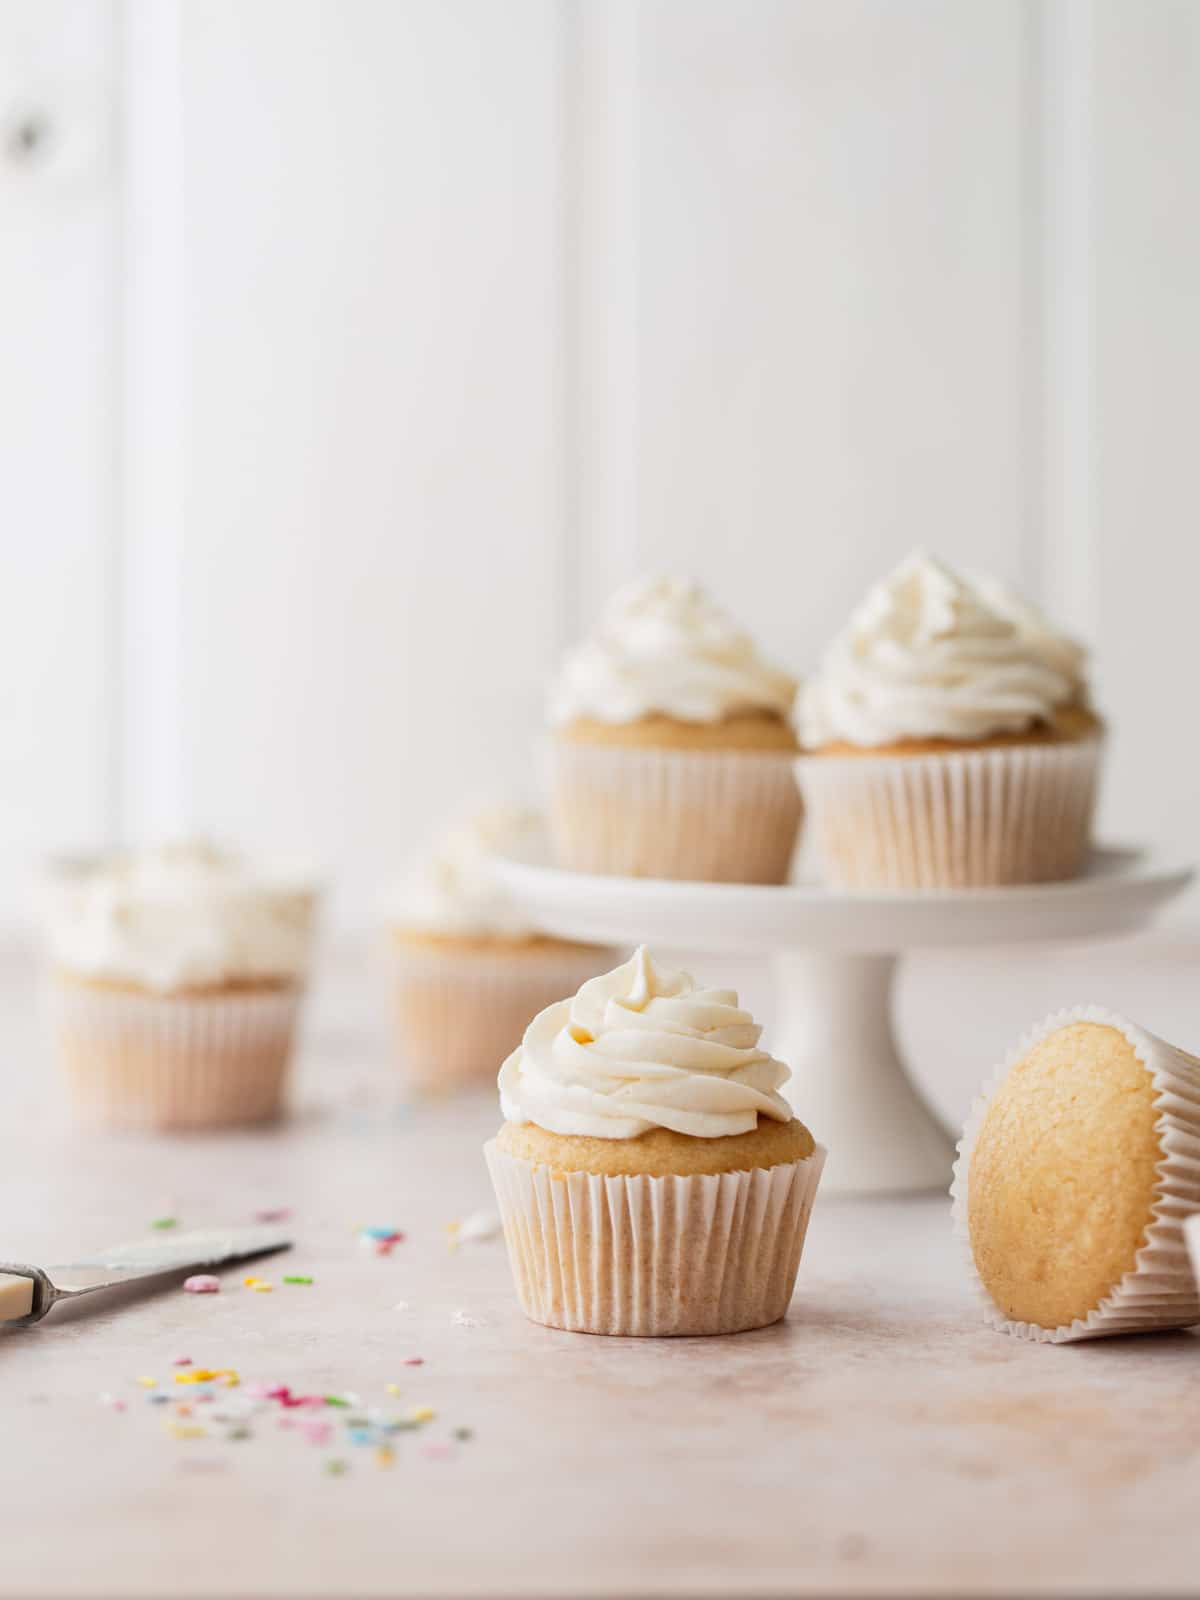 Frosted vanilla cupcakes on a white background.